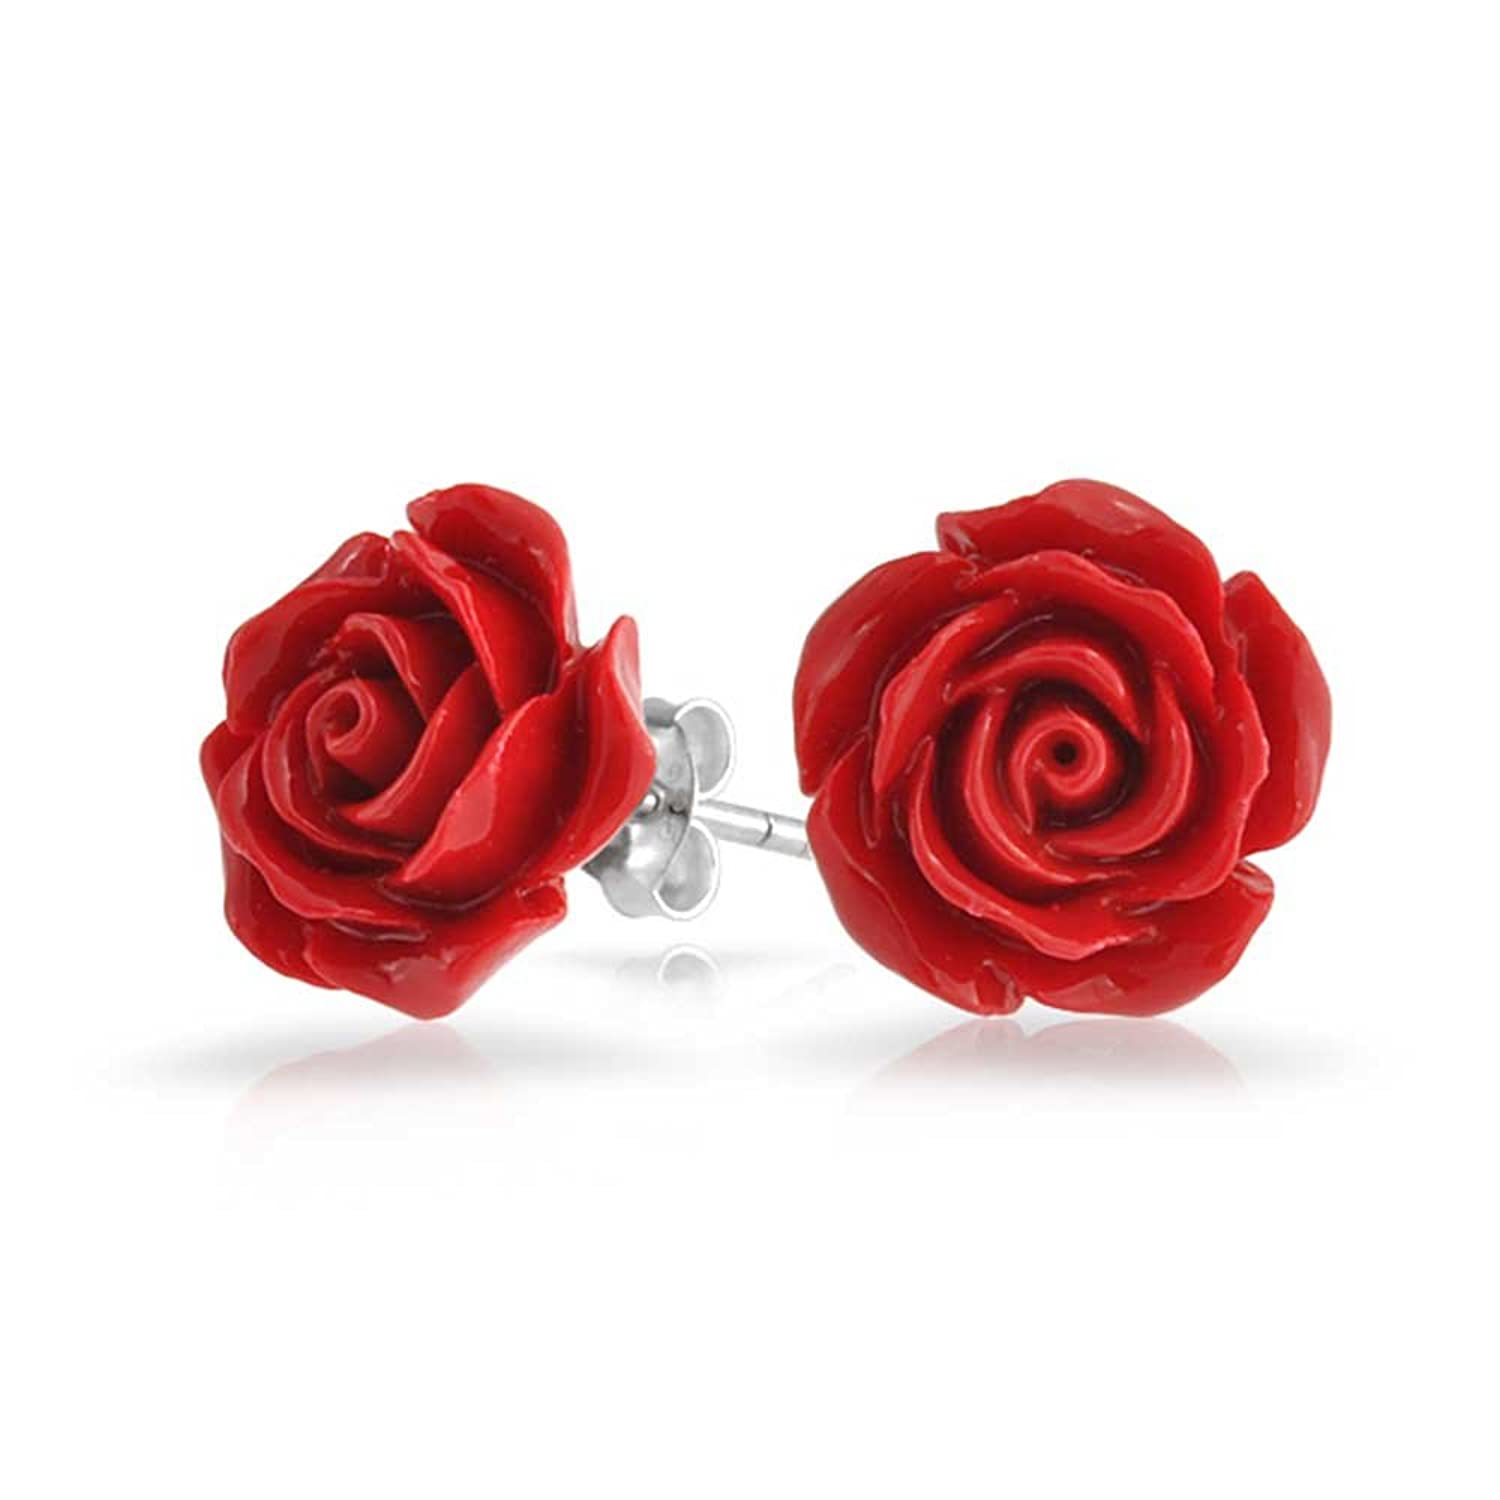 Amazon: Bling Jewelry Silver Plated Red Rose Stud Earrings 10mm: Jewelry